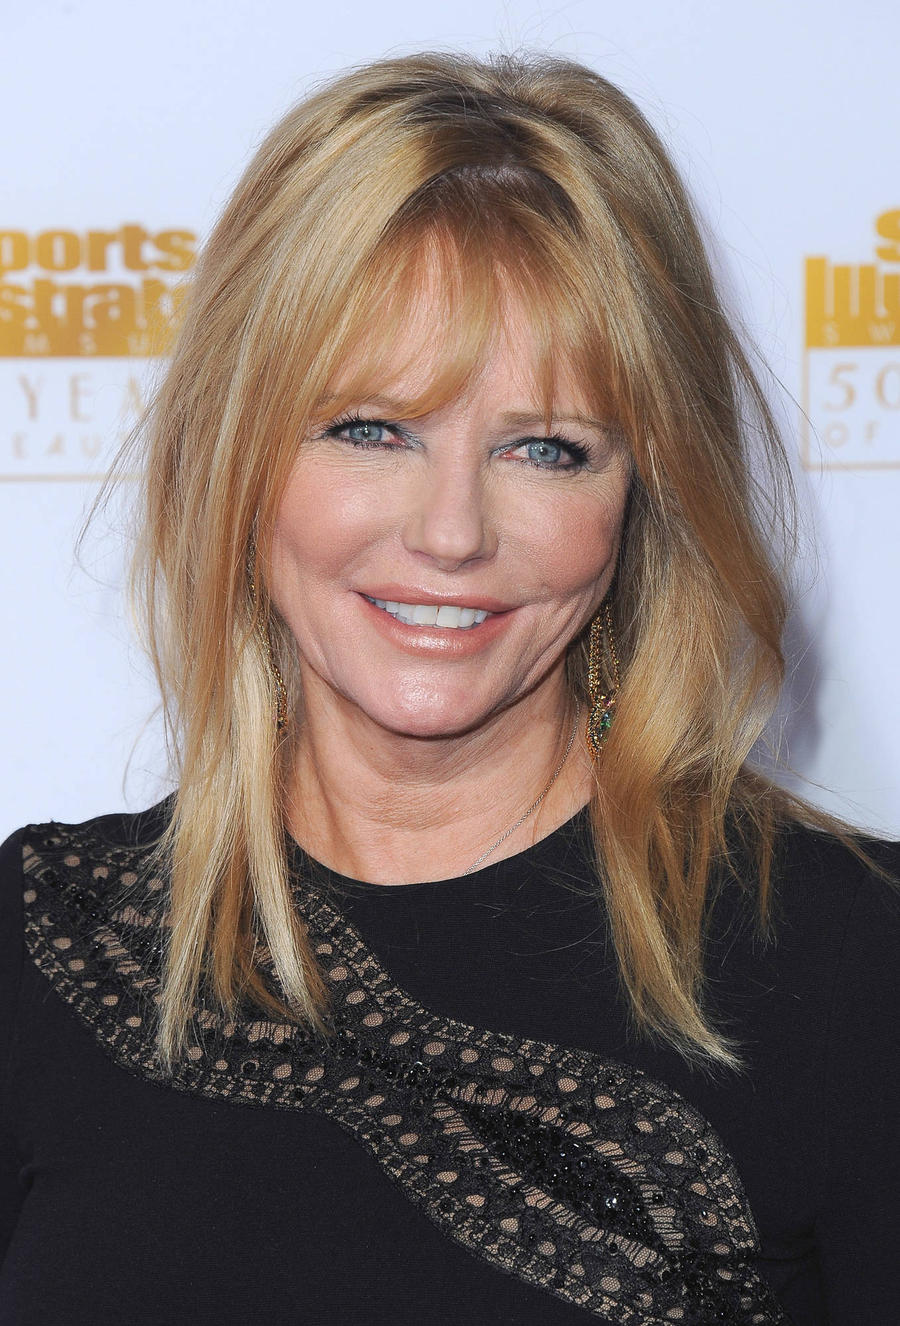 Cheryl Tiegs Apologises For Plus-size Comments